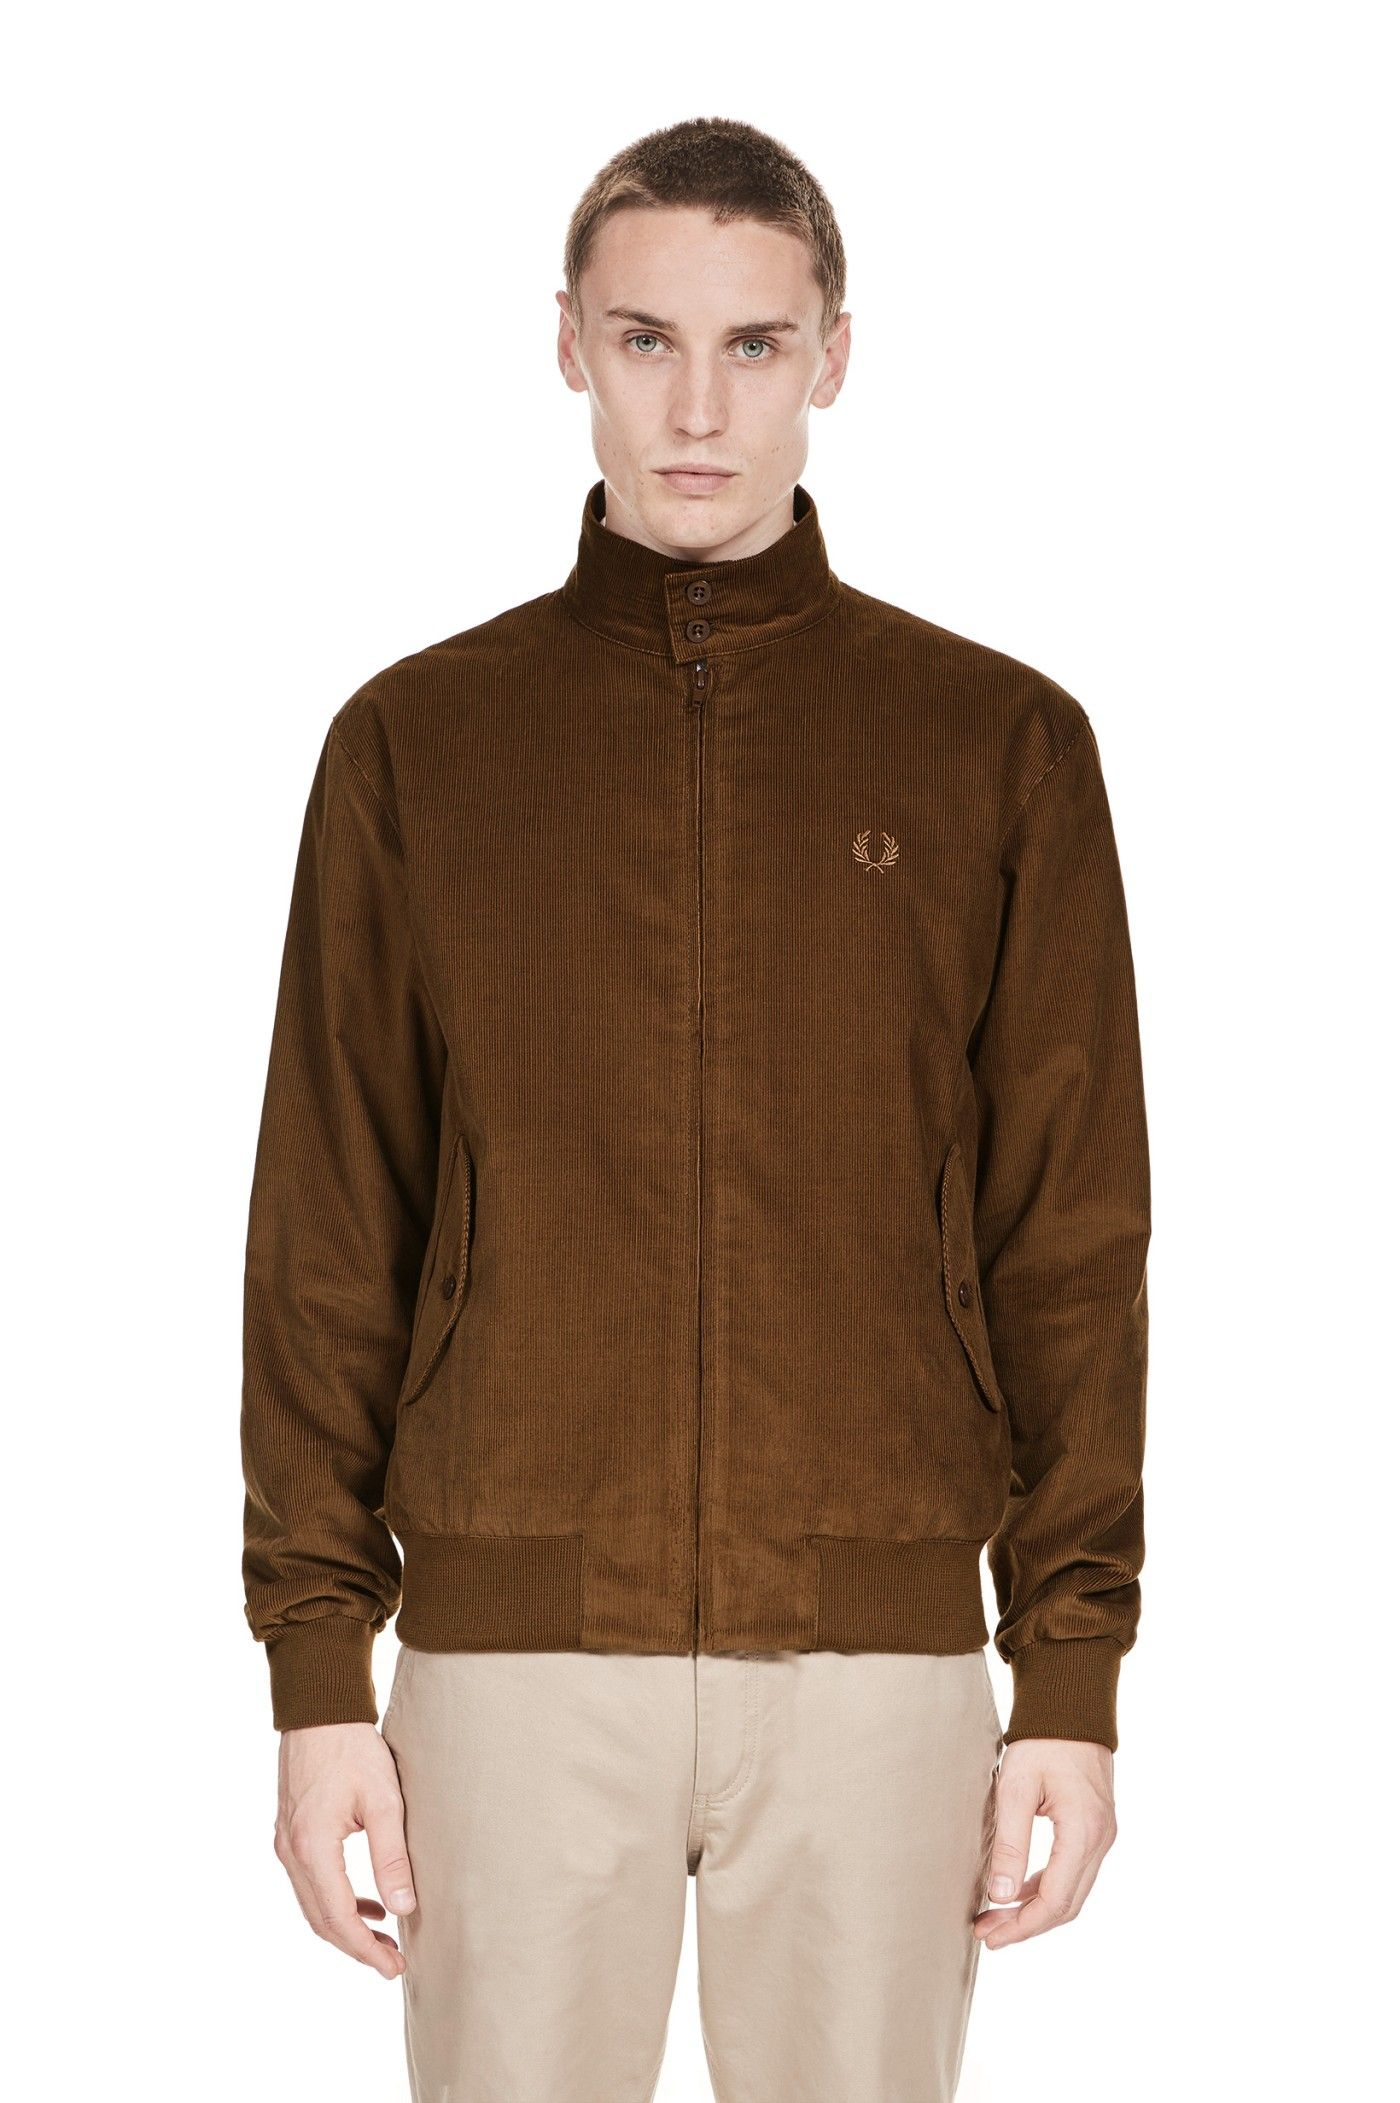 Fred perry